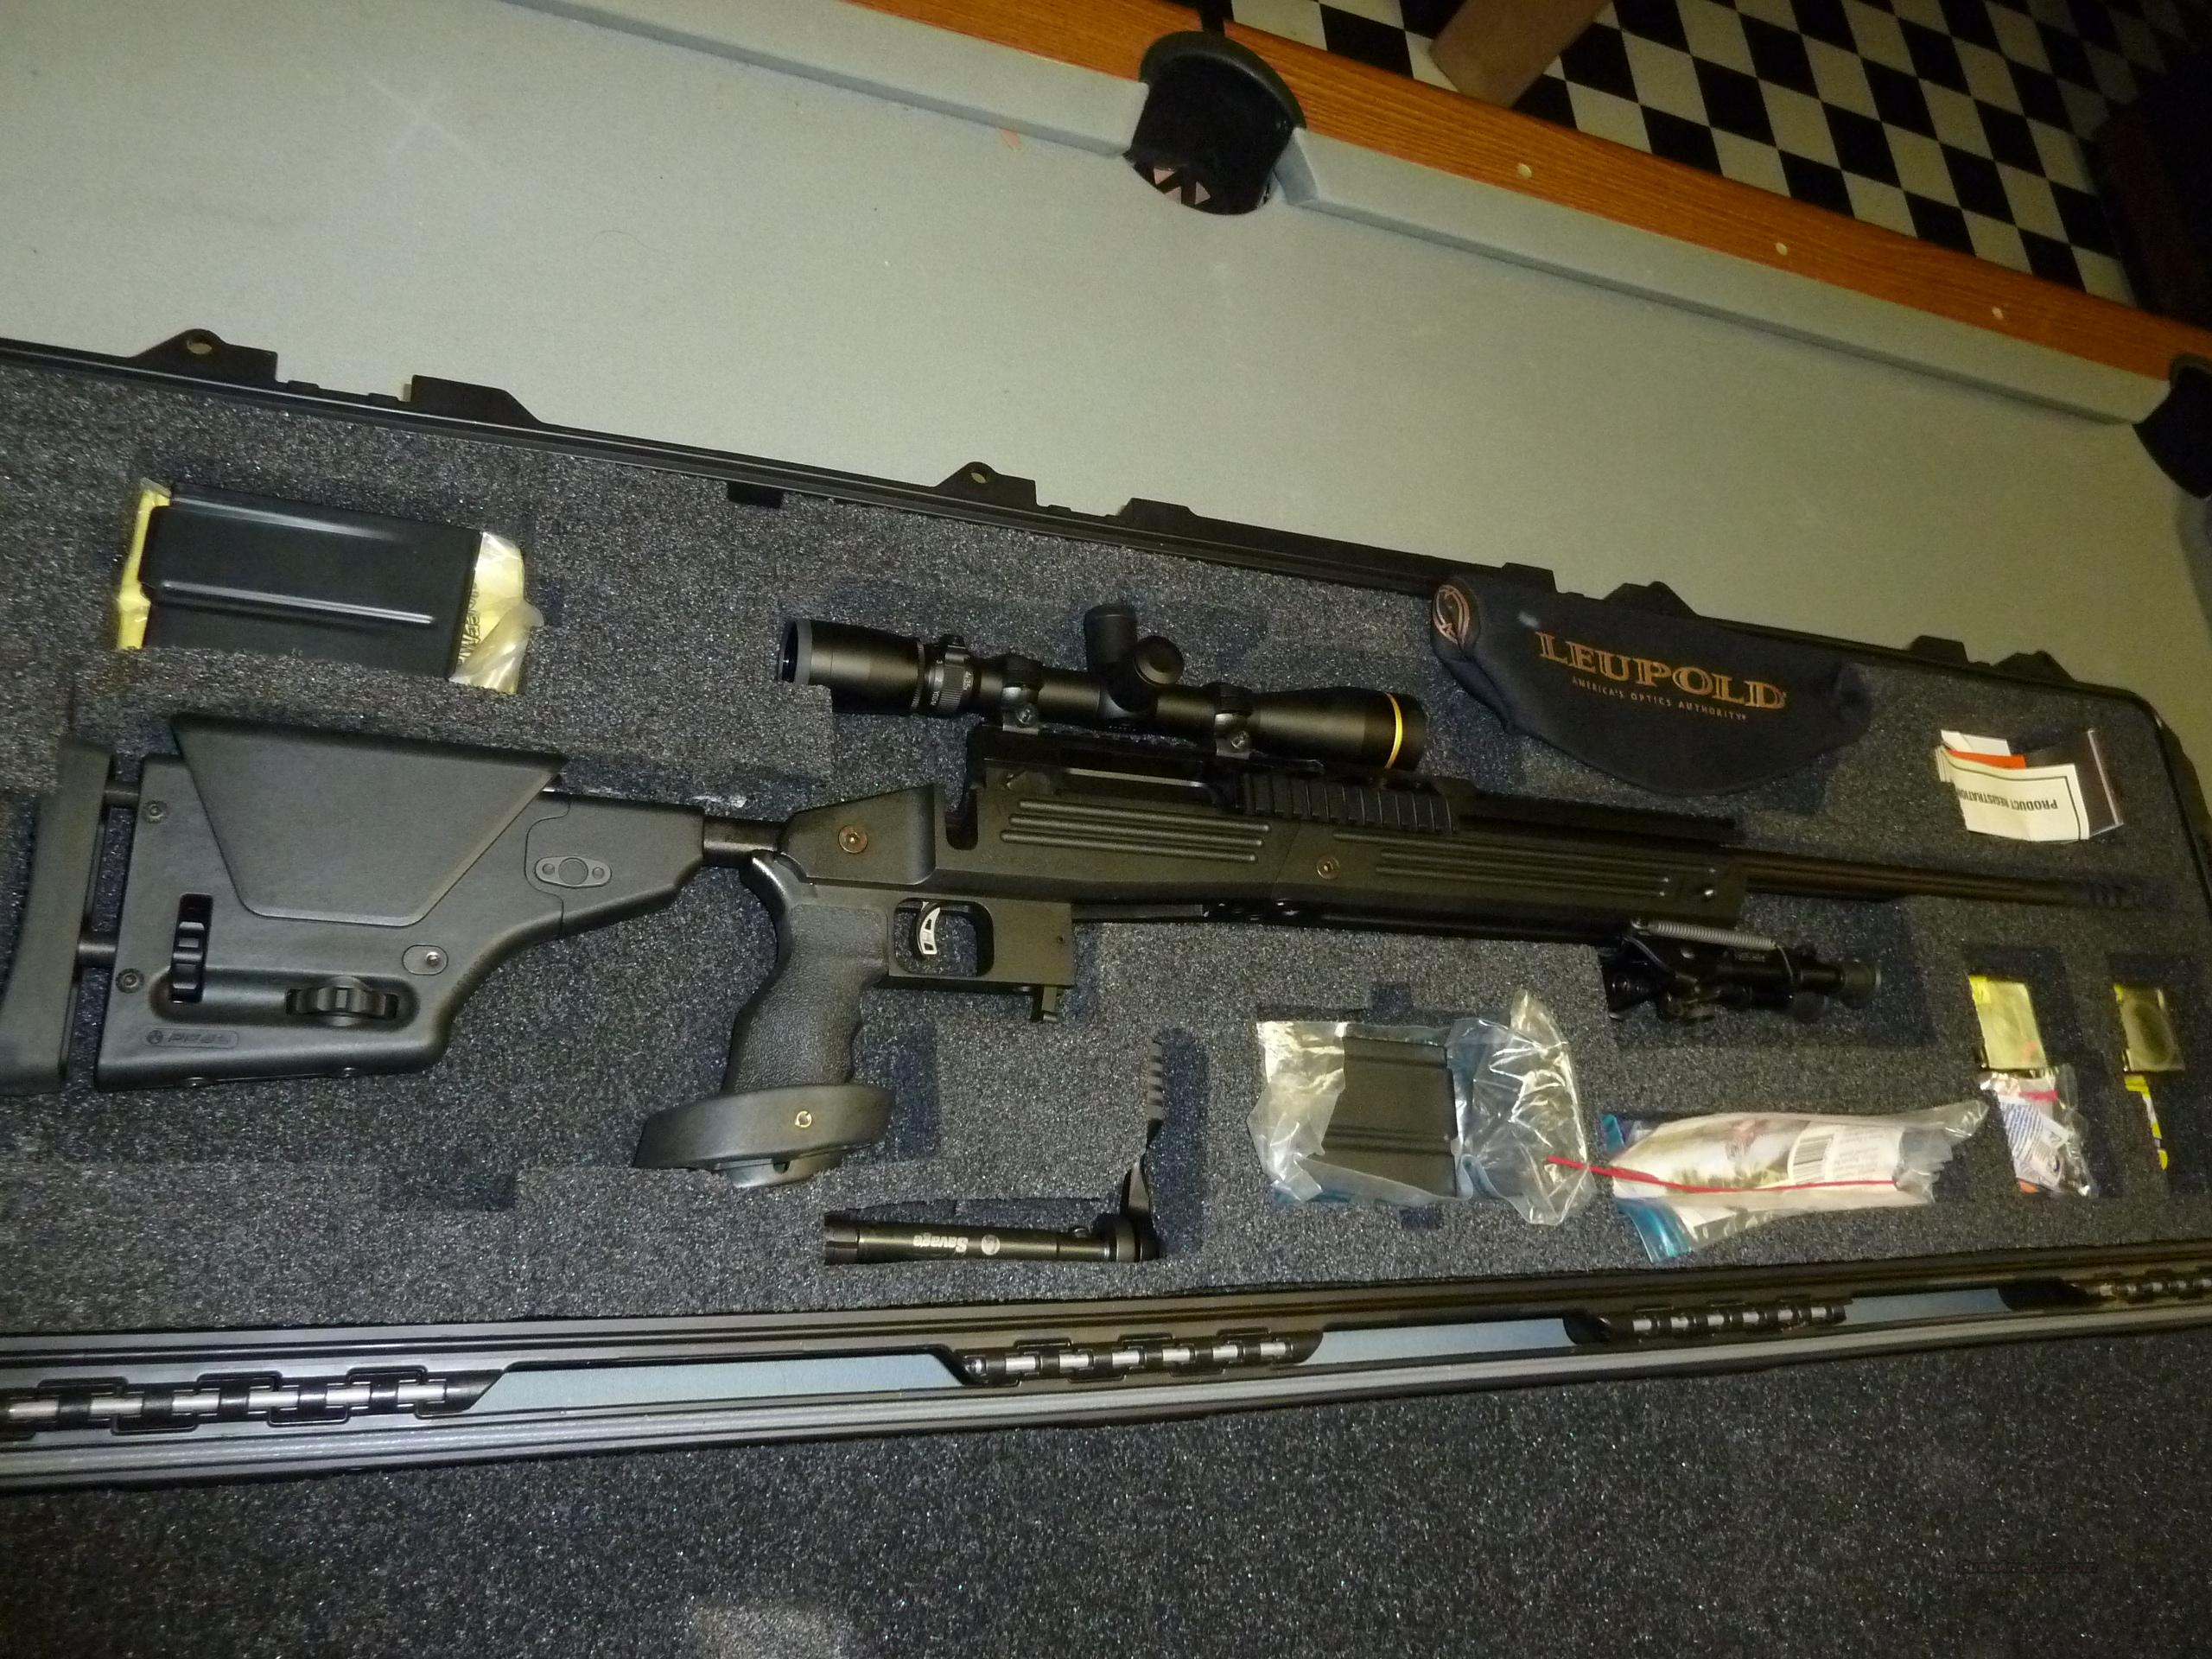 law enforcement sniper essay Militarization of police refers to the use of military equipment and tactics by law enforcement officersthis includes the use of armored personnel carriers, assault rifles, submachine guns.